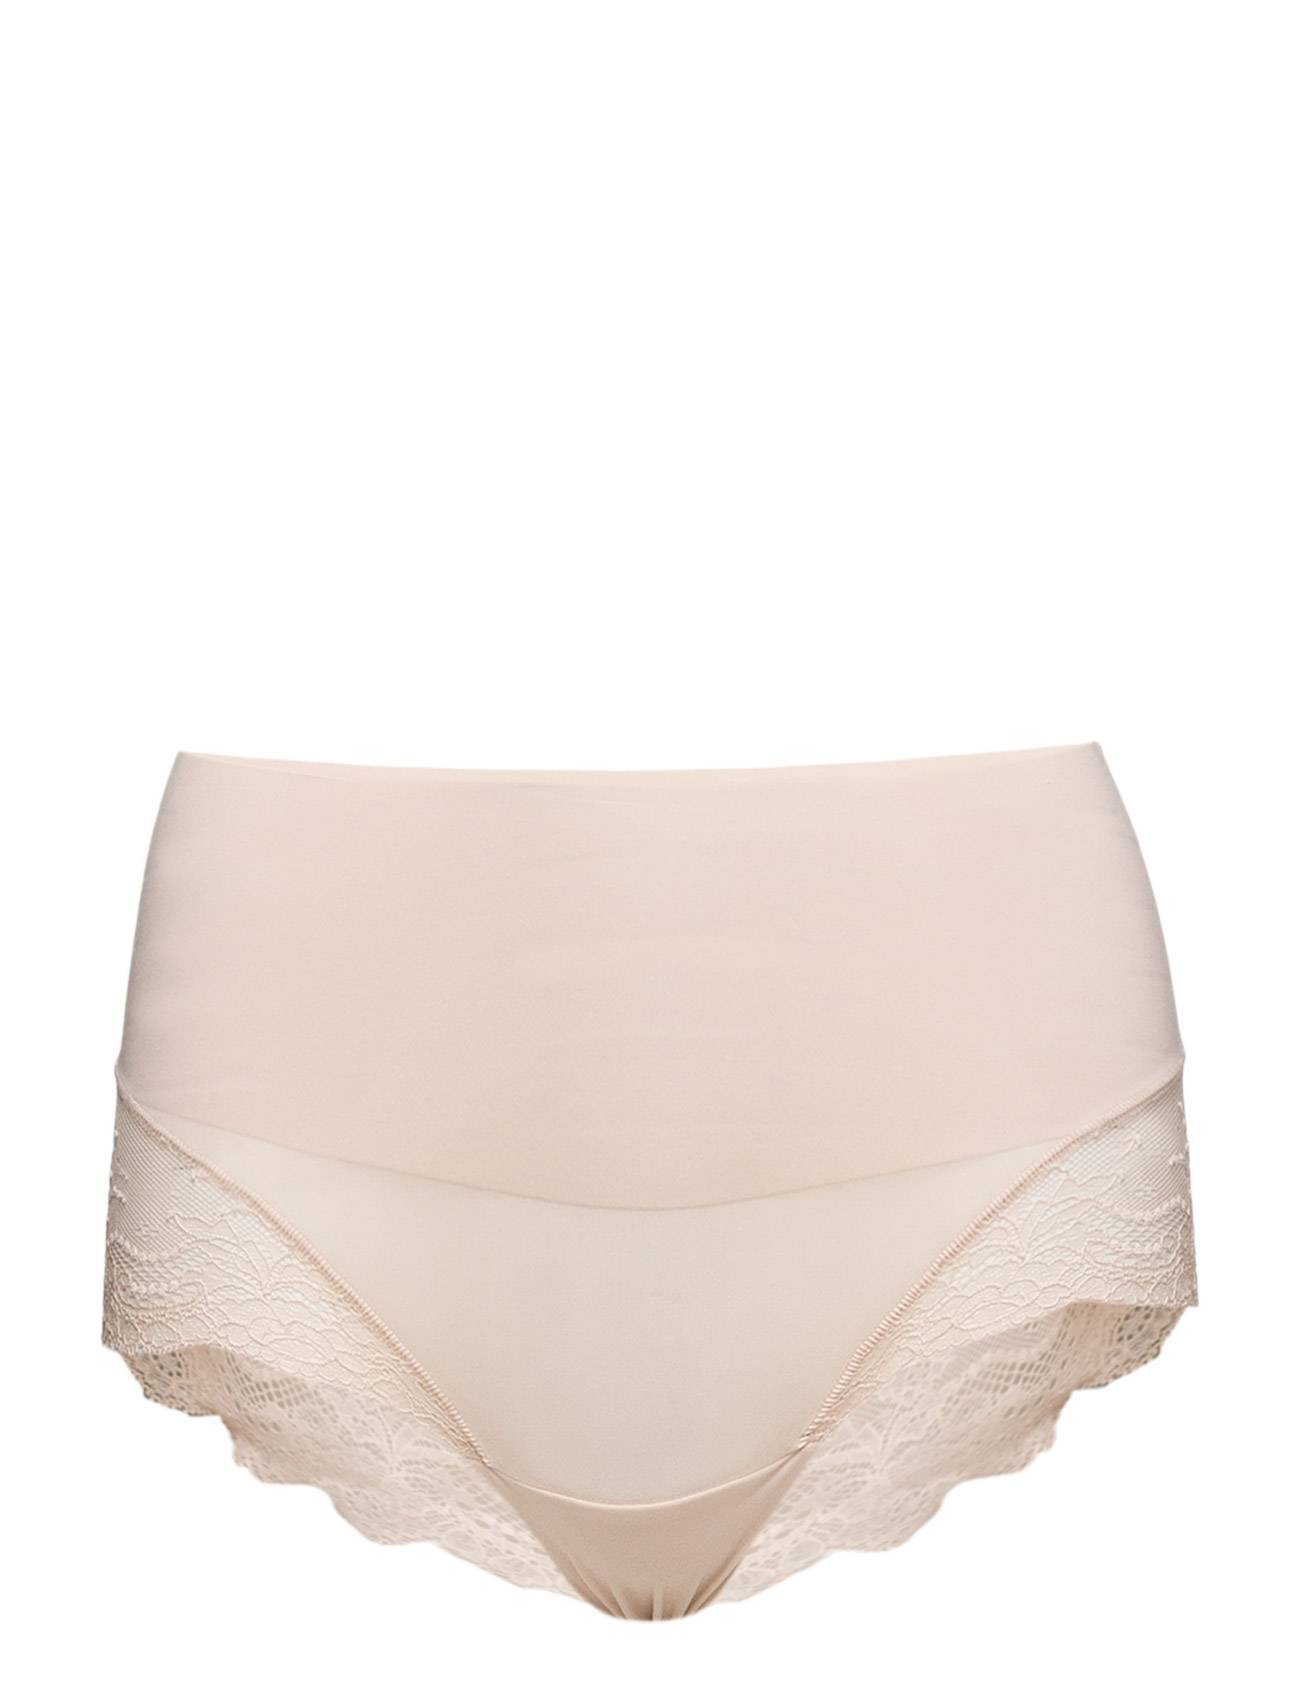 Spanx Lace Hi-Hipst Undie-Tectable